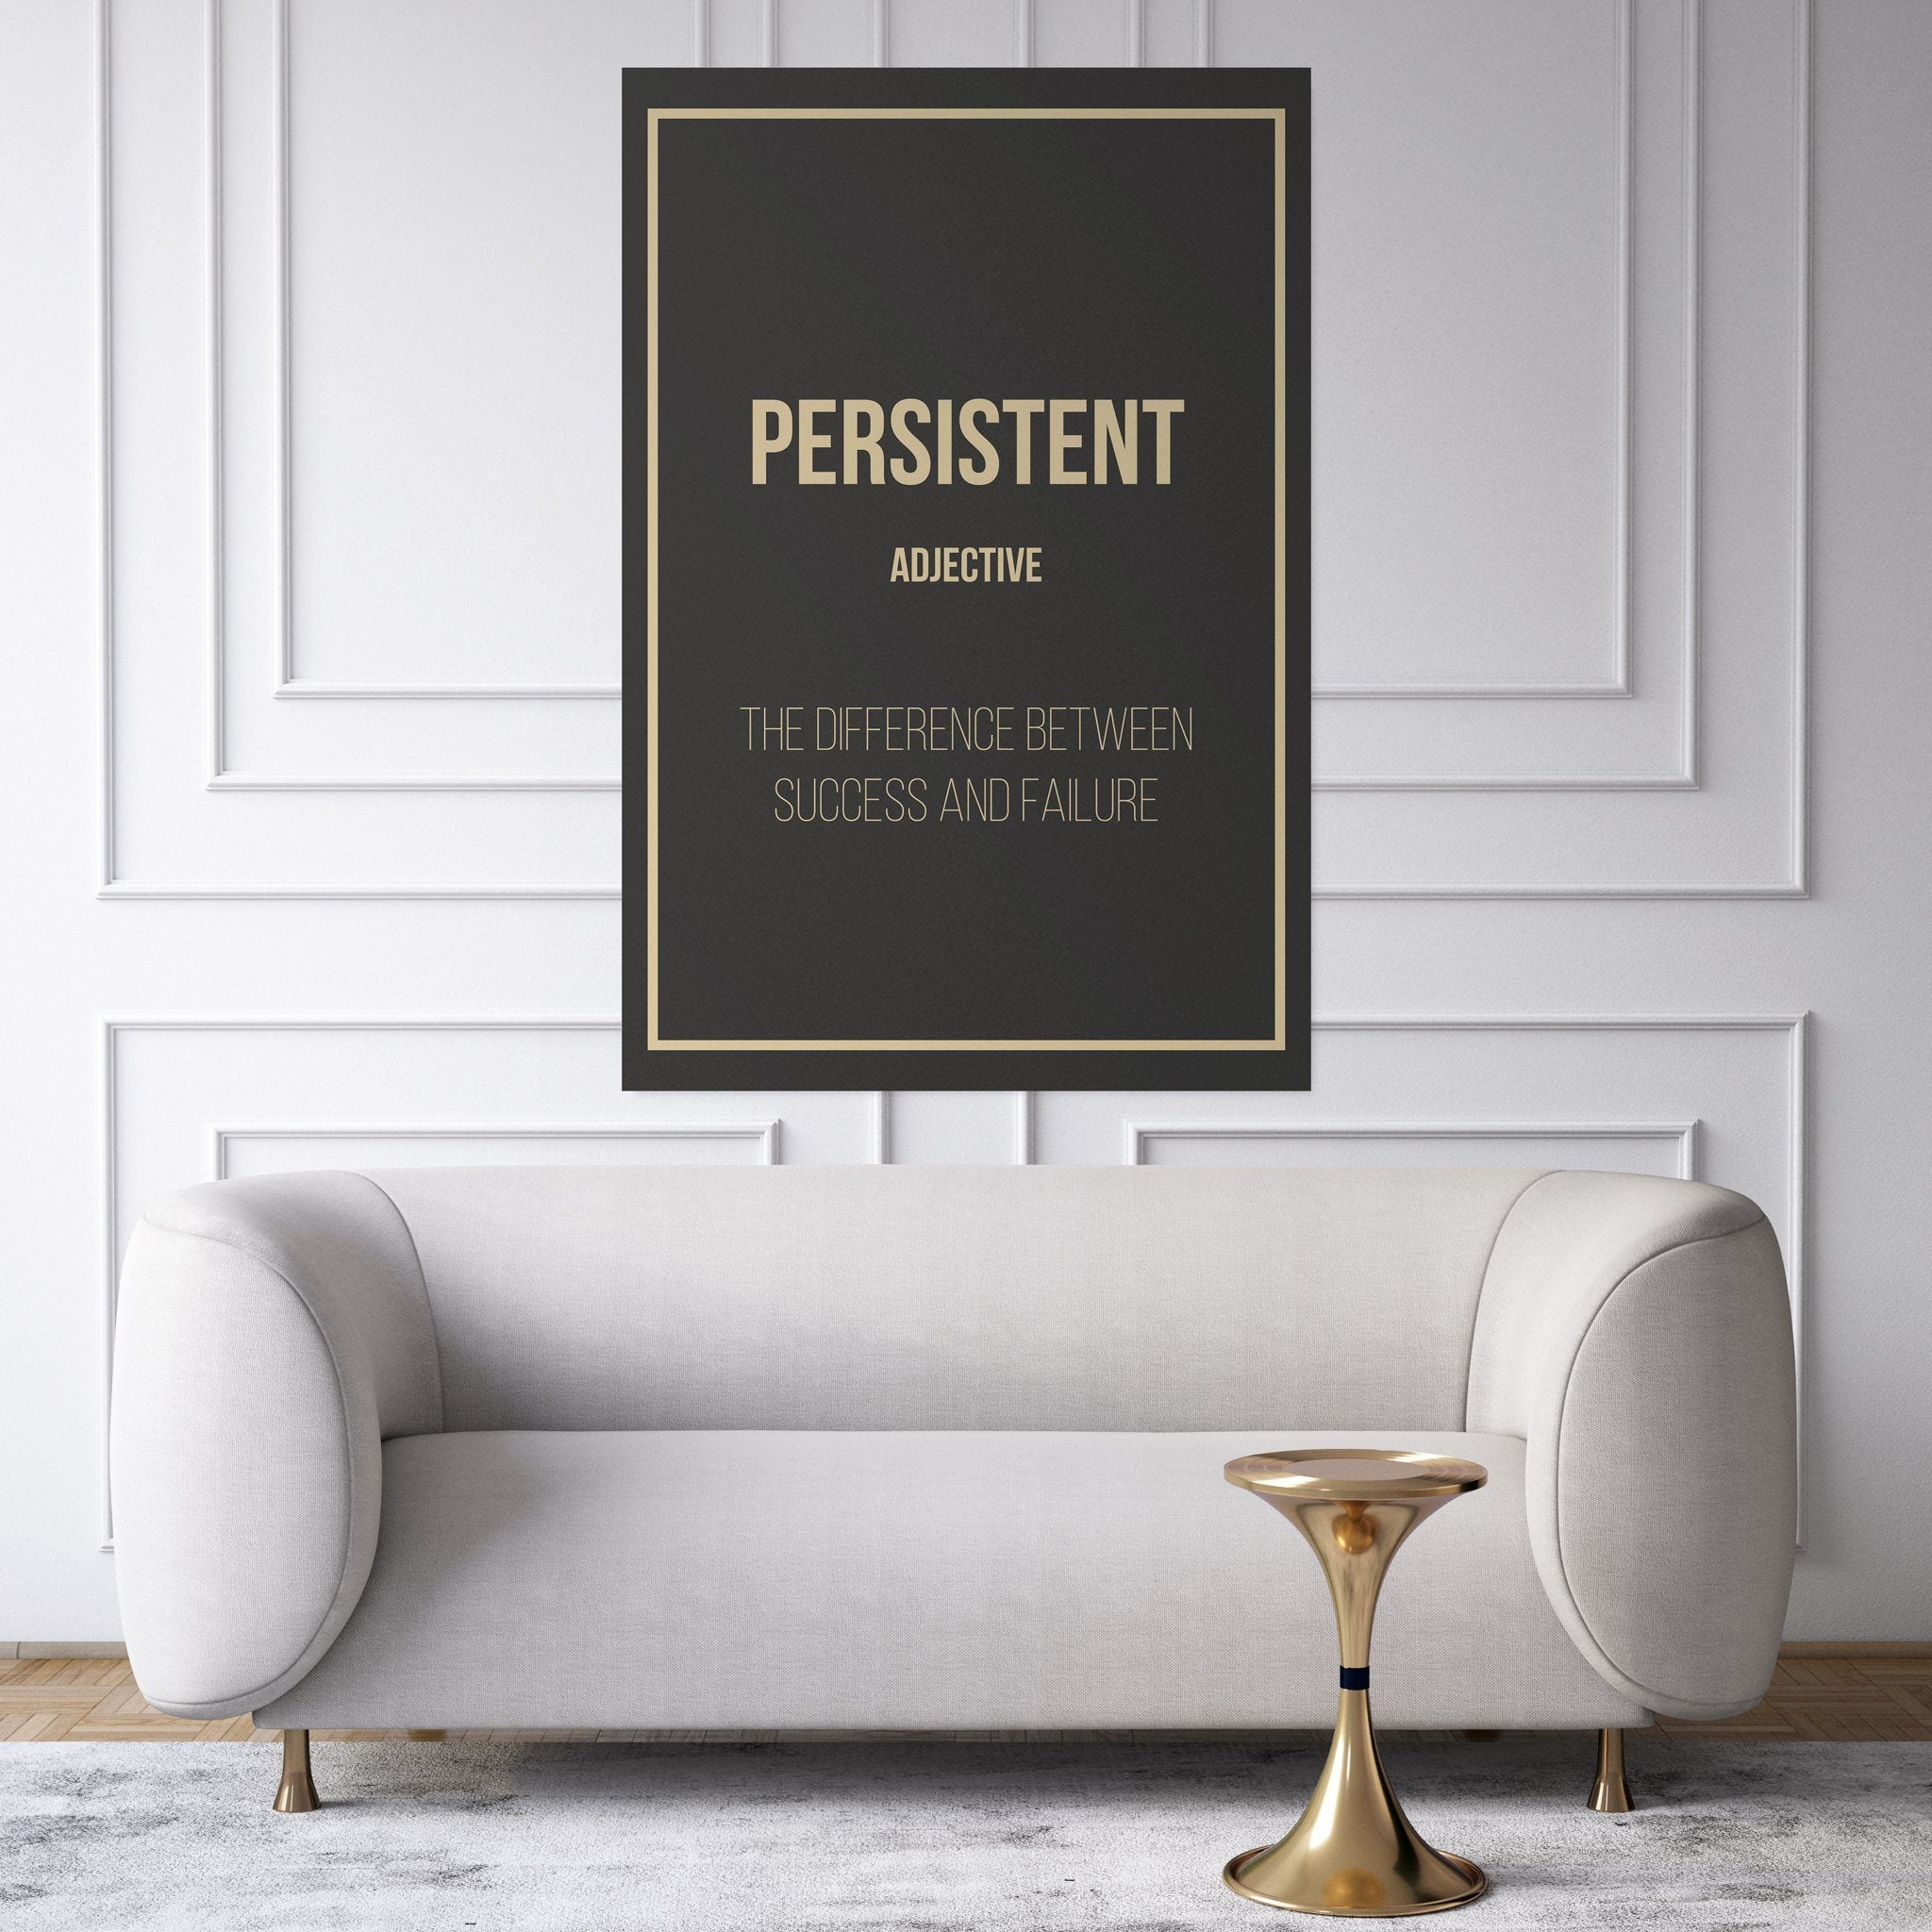 Persistent- definition entrepreneur for the living room